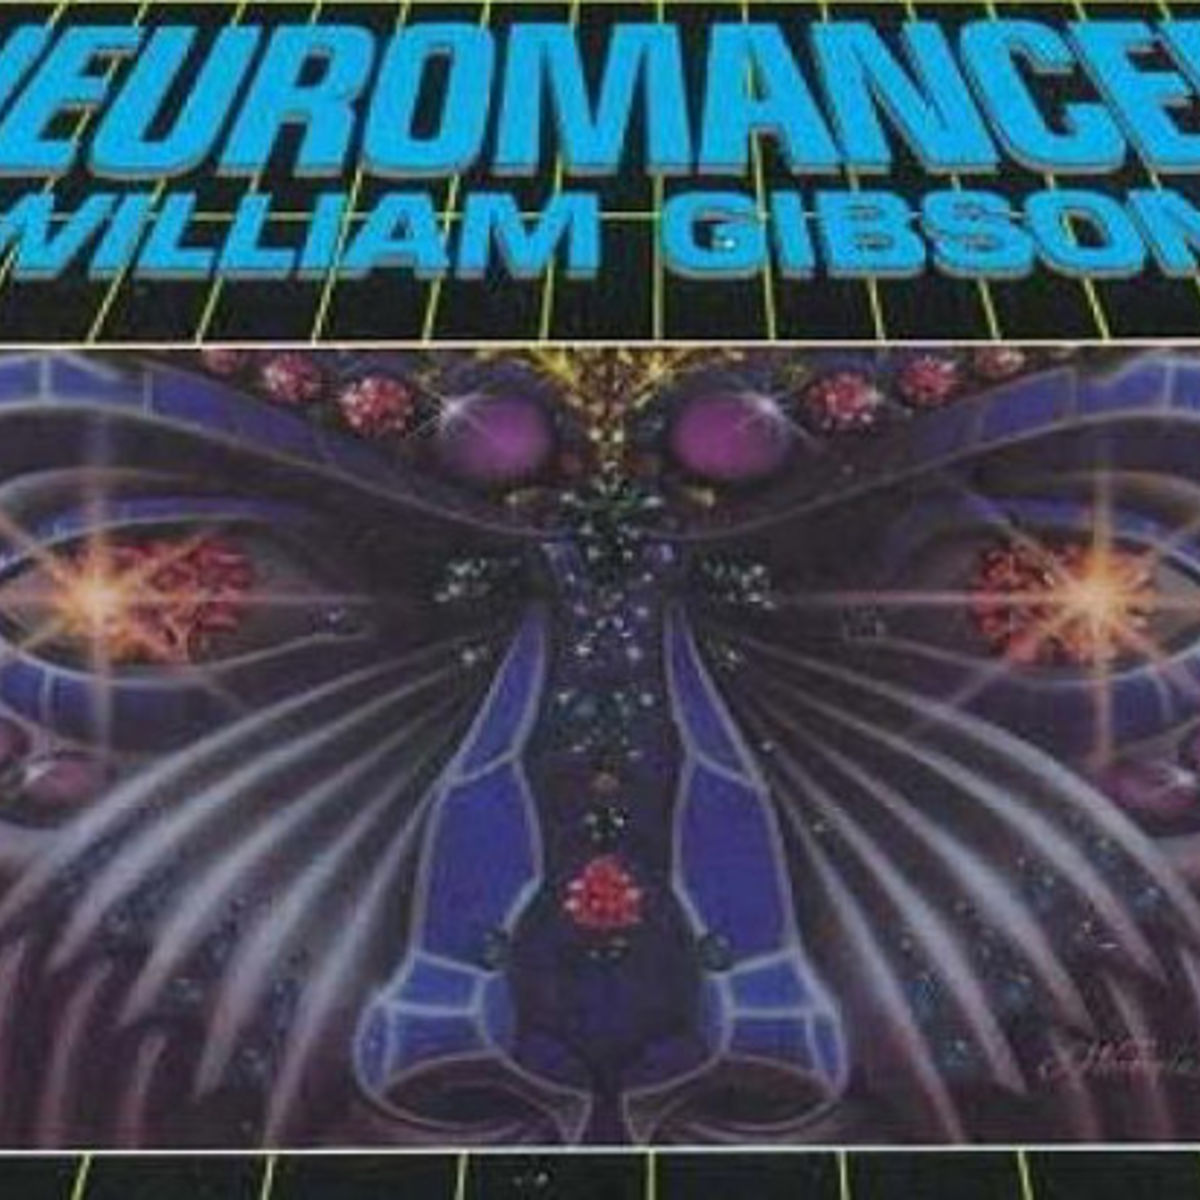 neuromancer-cover.jpg